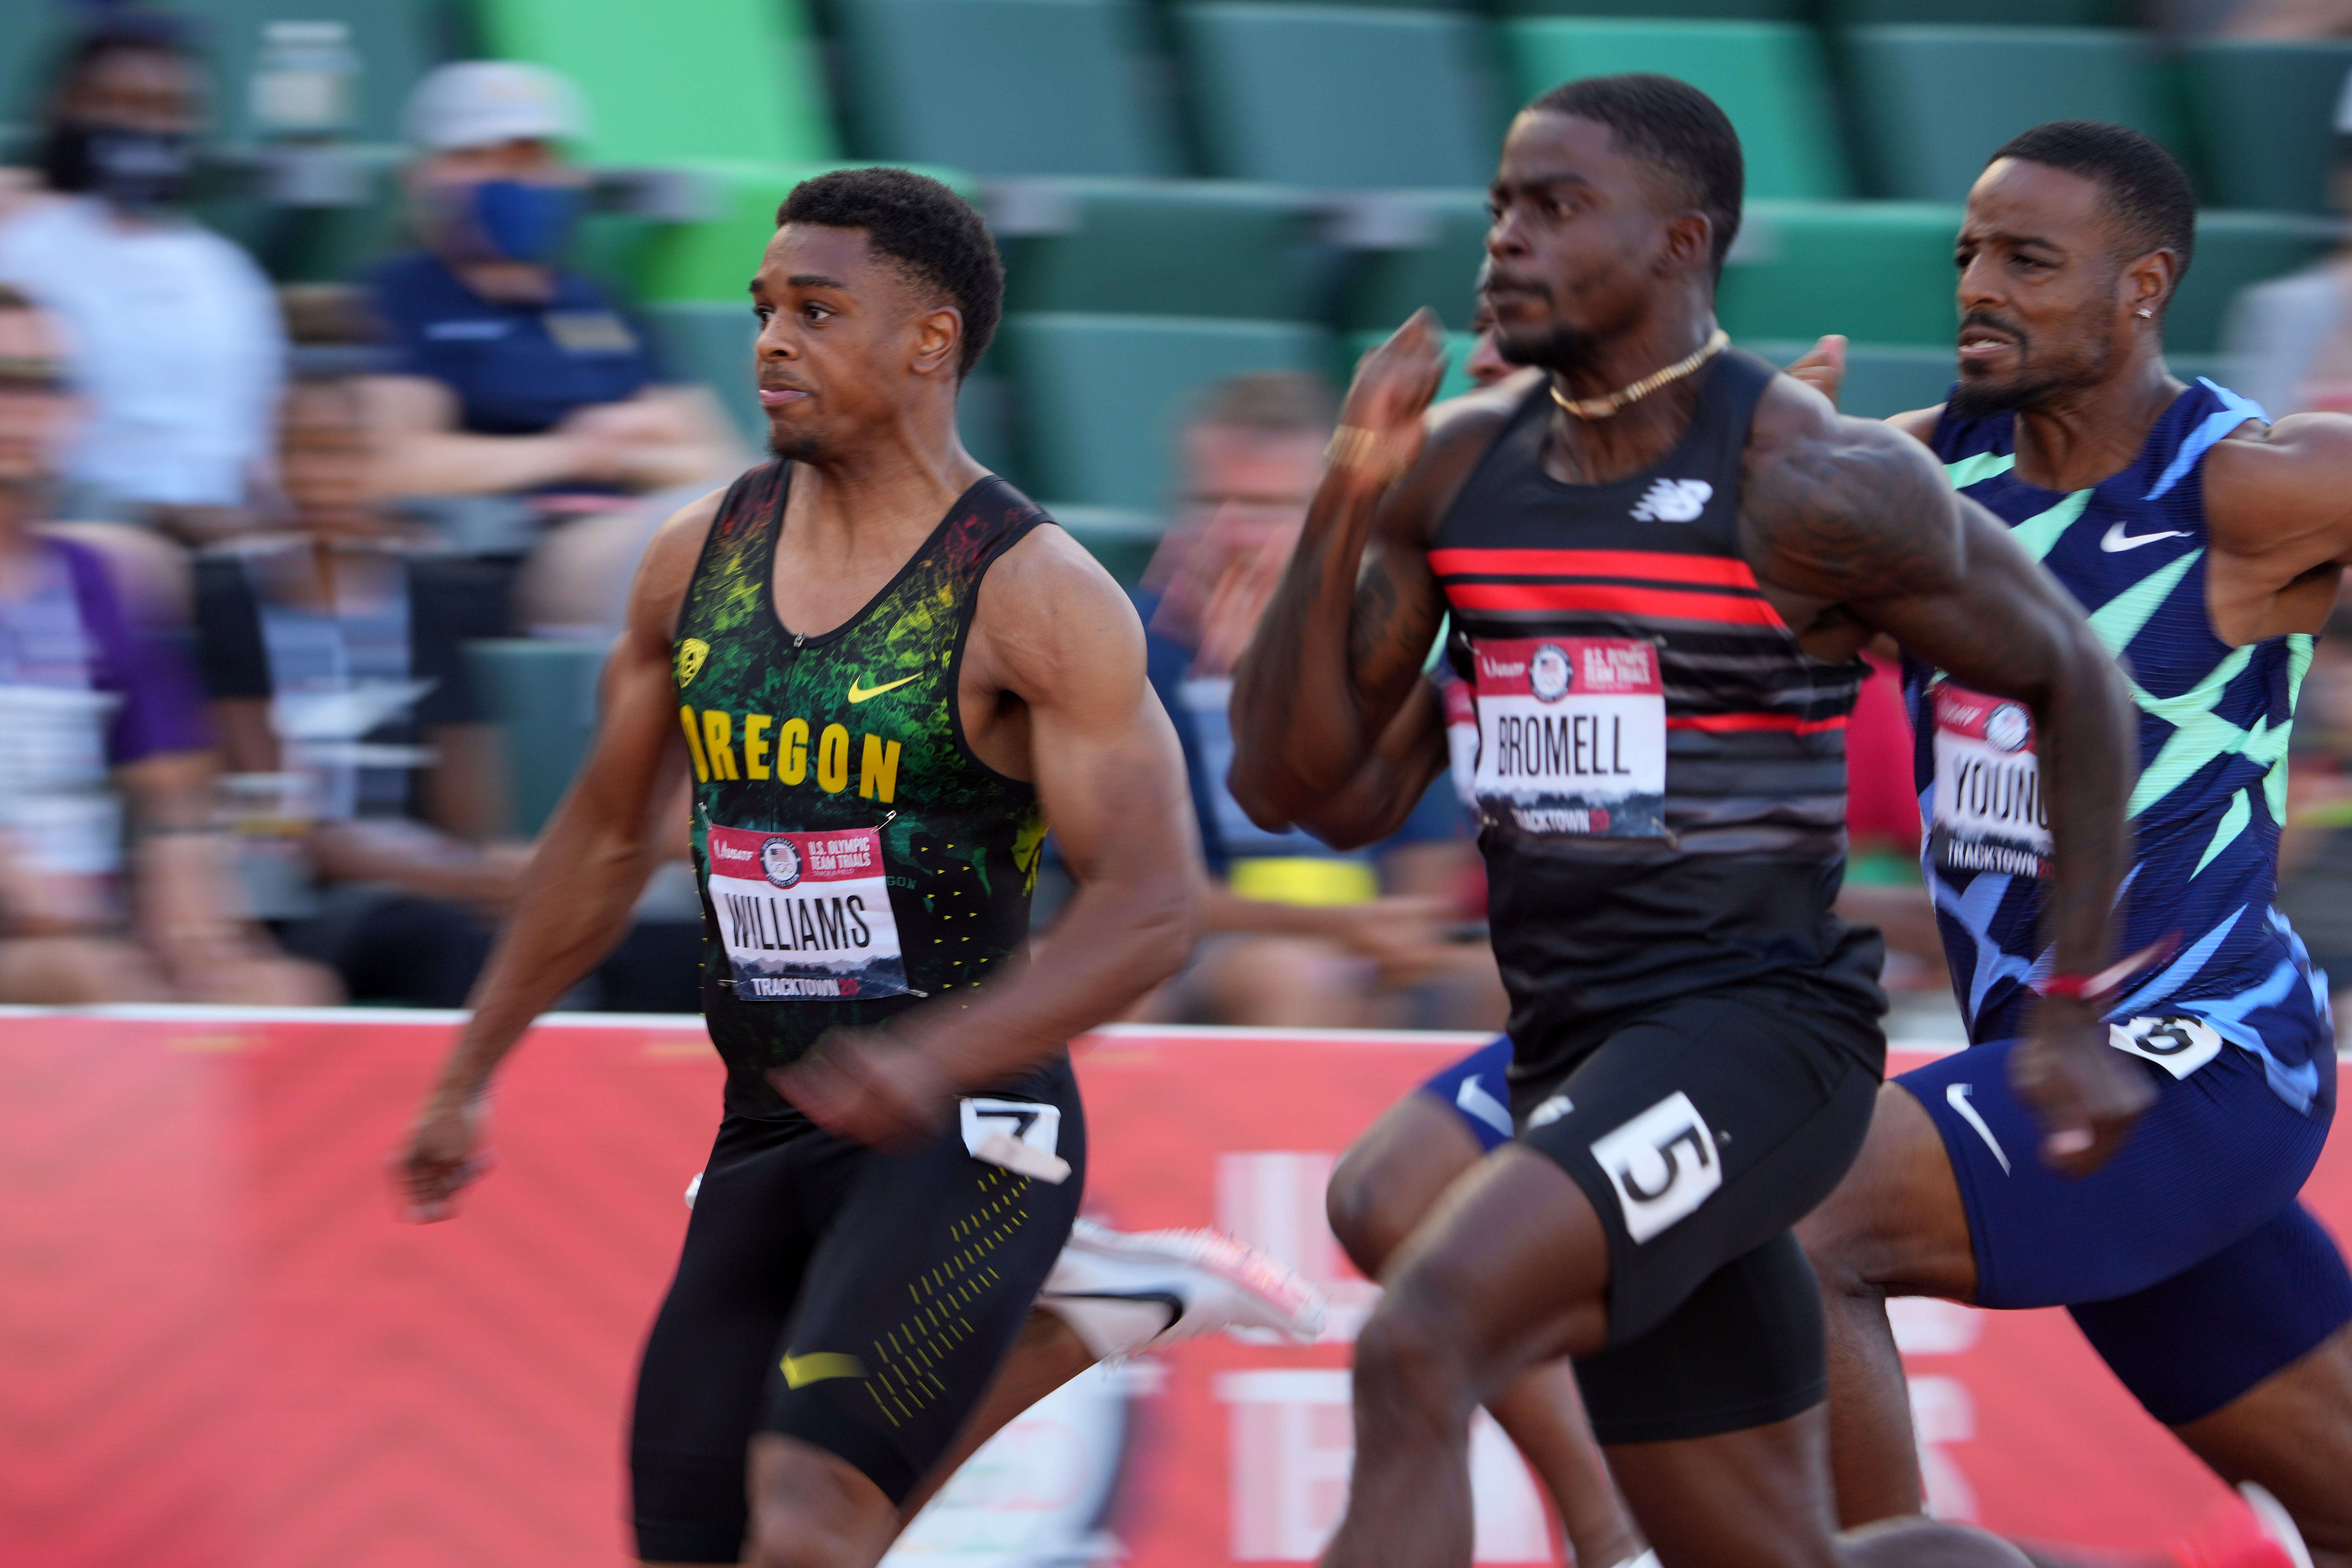 Jun 20, 2021; Eugene, OR, USA; Micah Wiliams of Oregon and Trayvon Bromell run in a 100m semifinal during the US Olympic Team Trials at Hayward Field. Mandatory Credit: Kirby Lee-USA TODAY Sports